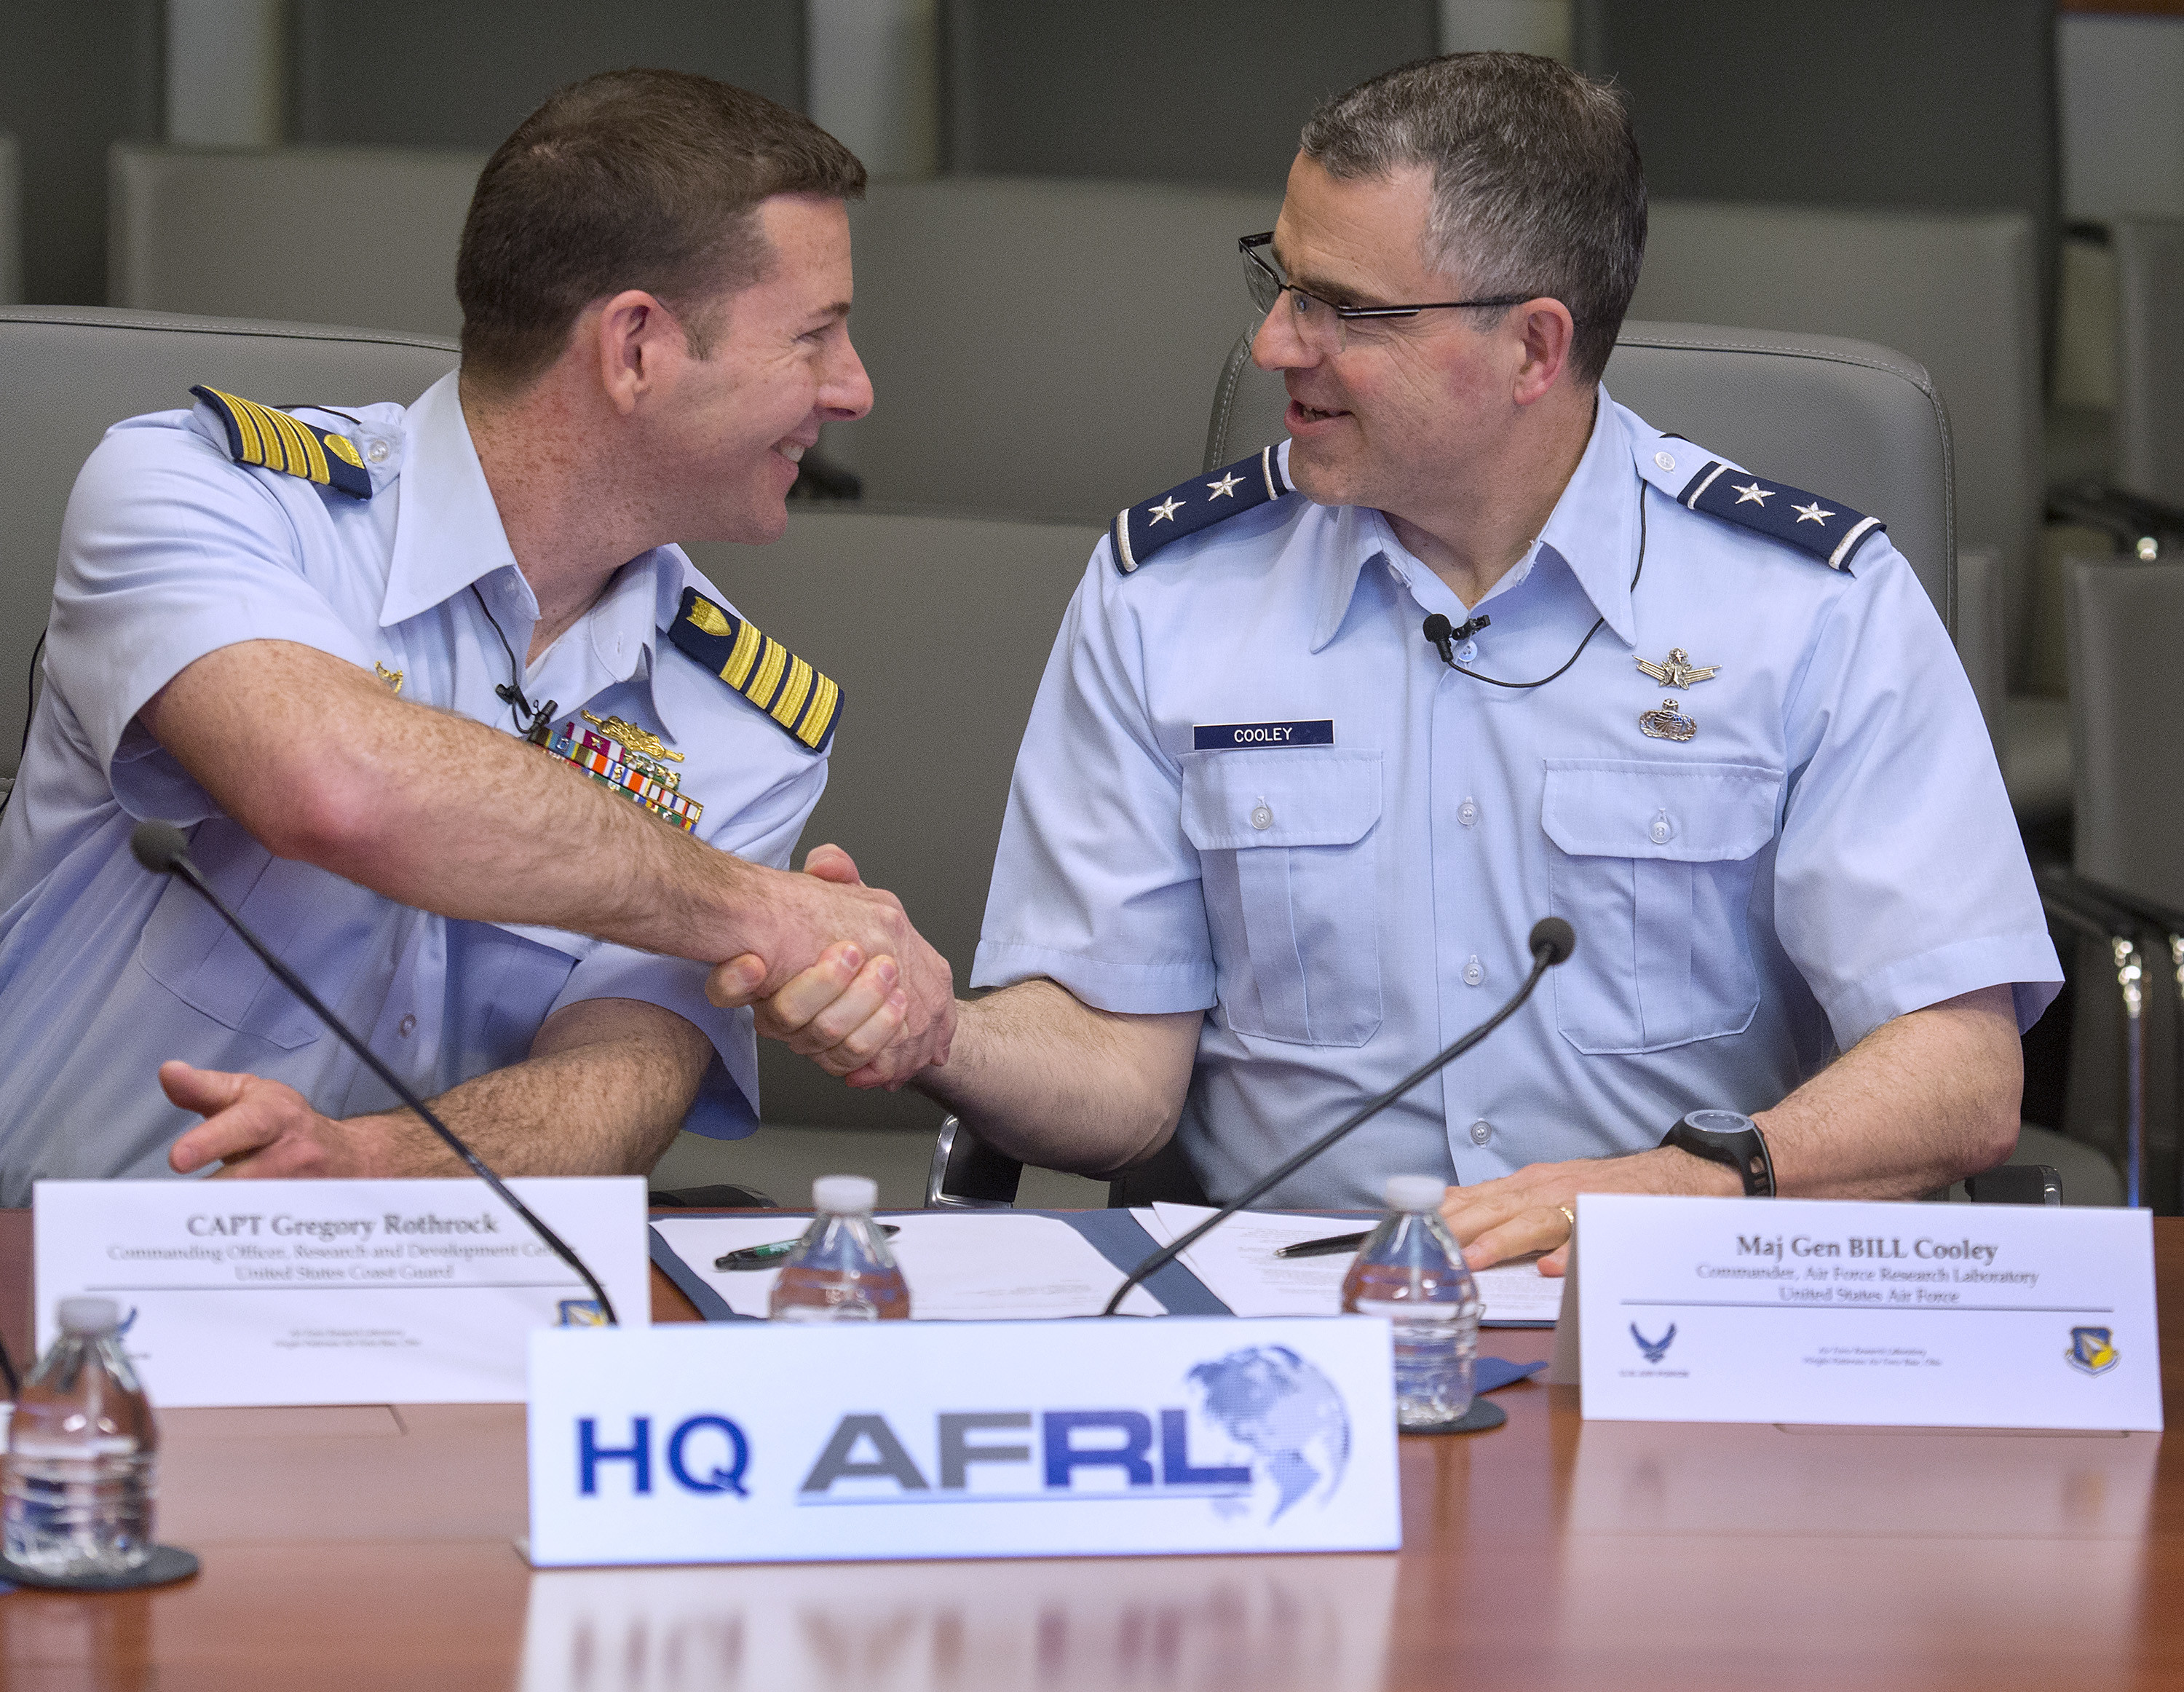 U.S. Coast Guard Capt. Greg Rothrock, Coast Guard Research and Development Center commanding officer, and Air Force Maj. General William Cooley, Air Force Research Laboratory commander, shake hands April 12, 2018, on Wright-Patterson Air Force Base, Ohio, after they signed a memorandum of understand between their two organizations. The agreement allows USCG RDC and AFRL to work together on tasks of mutual benefit. (U.S. Air Force photo by R.J. Oriez)